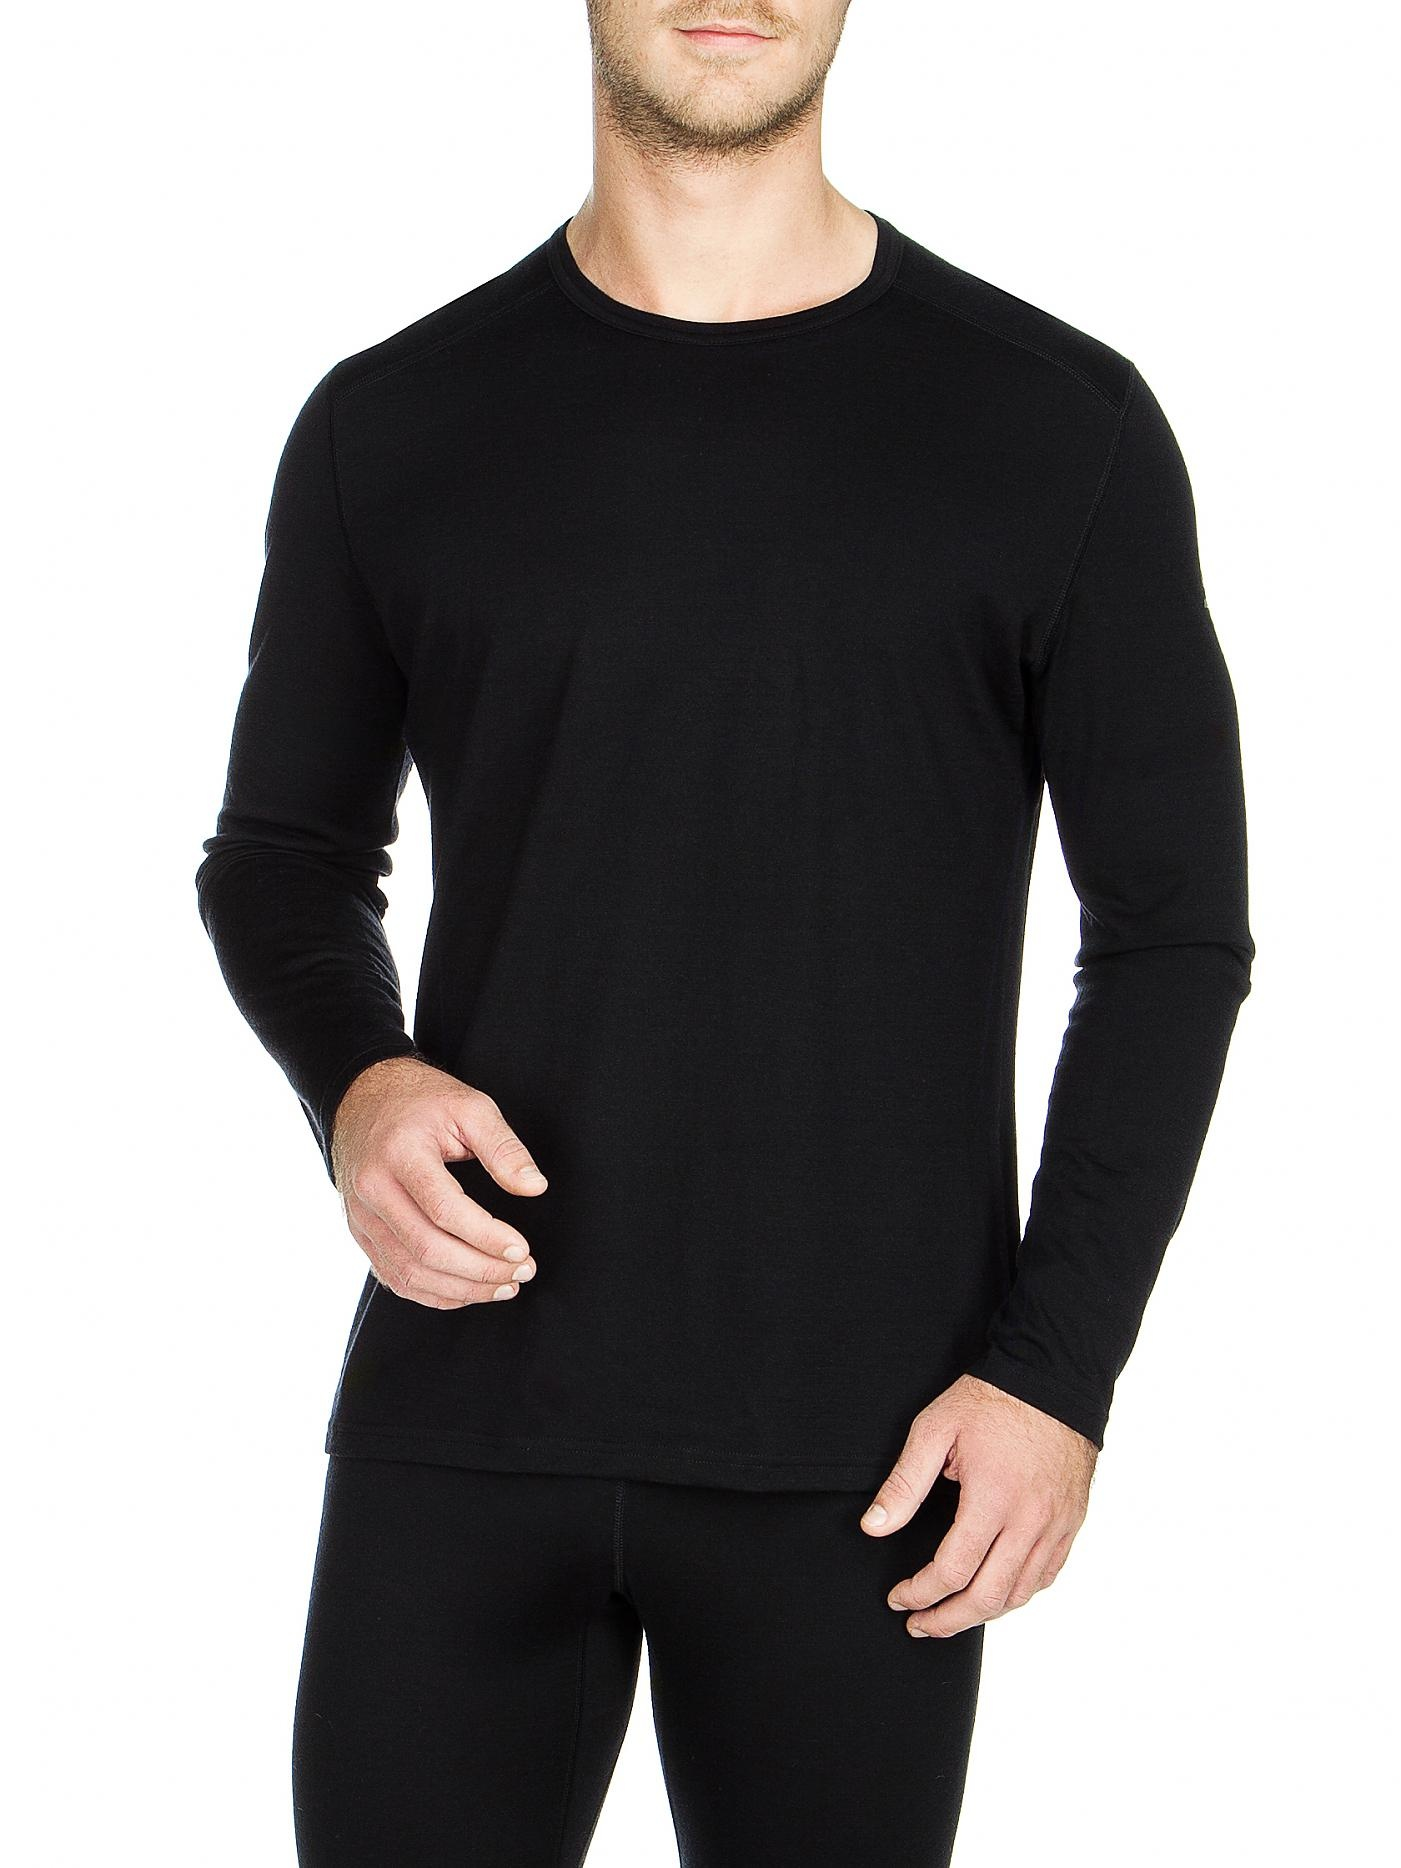 Icebreaker Merino Clothing Inc Icebreaker Oasis 200 Long Sleeve Black Mens Small